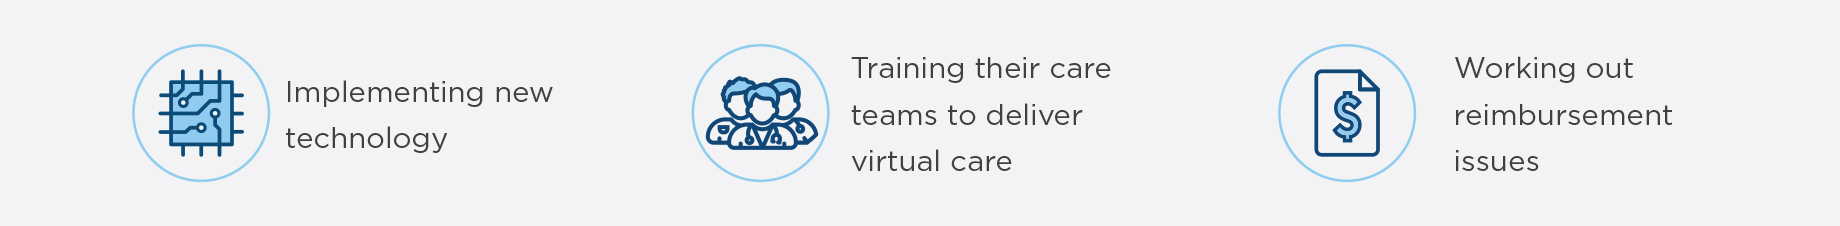 Implementing new technology, training their care teams to deliver virtual care, and working out reimbursement issues.